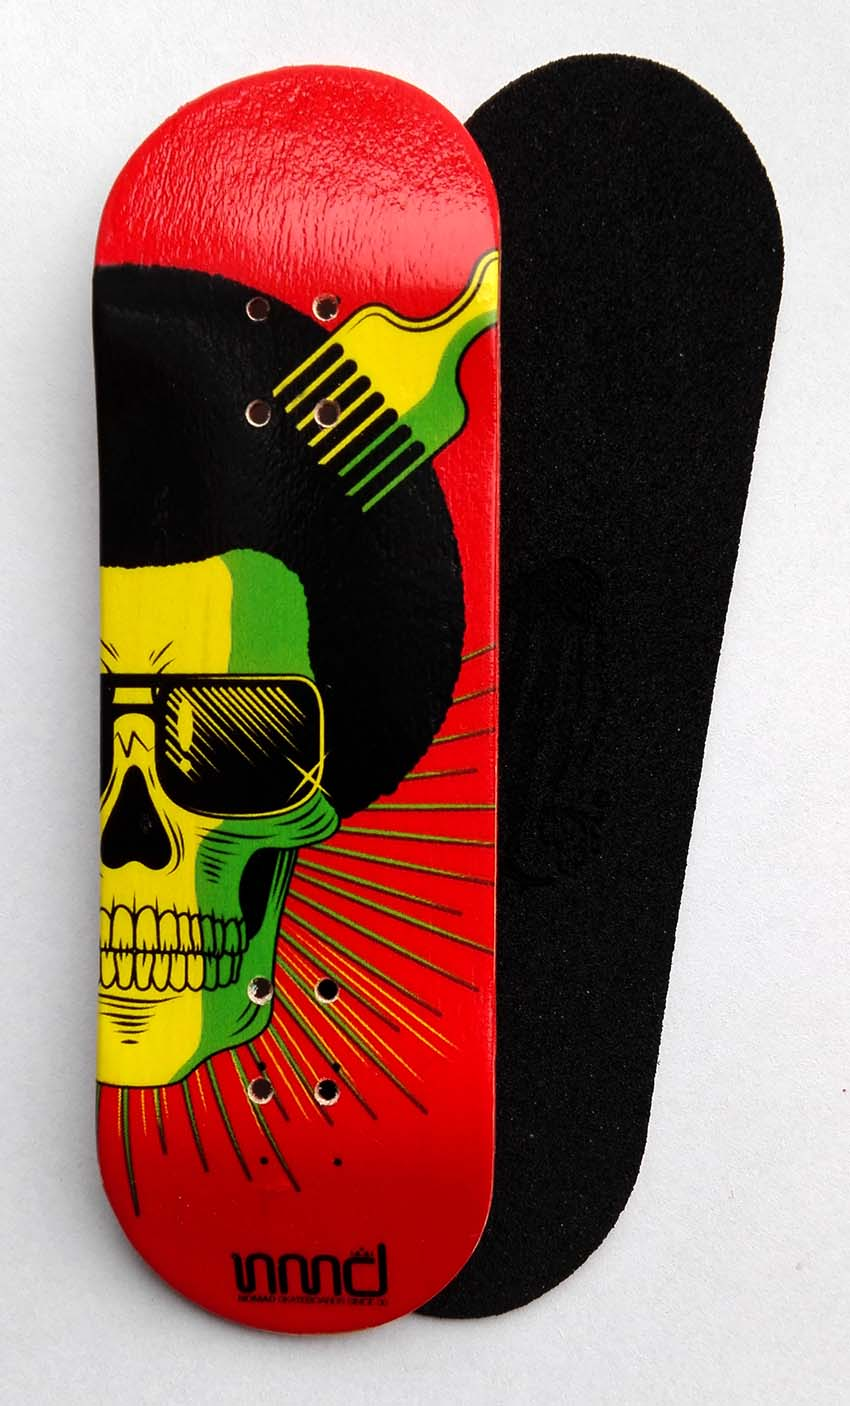 BOARD G5 NOMAD RASTA SKULL 31MM WIDE MEDIUM CONCAVE – 9,50 € ($12,38 USD)